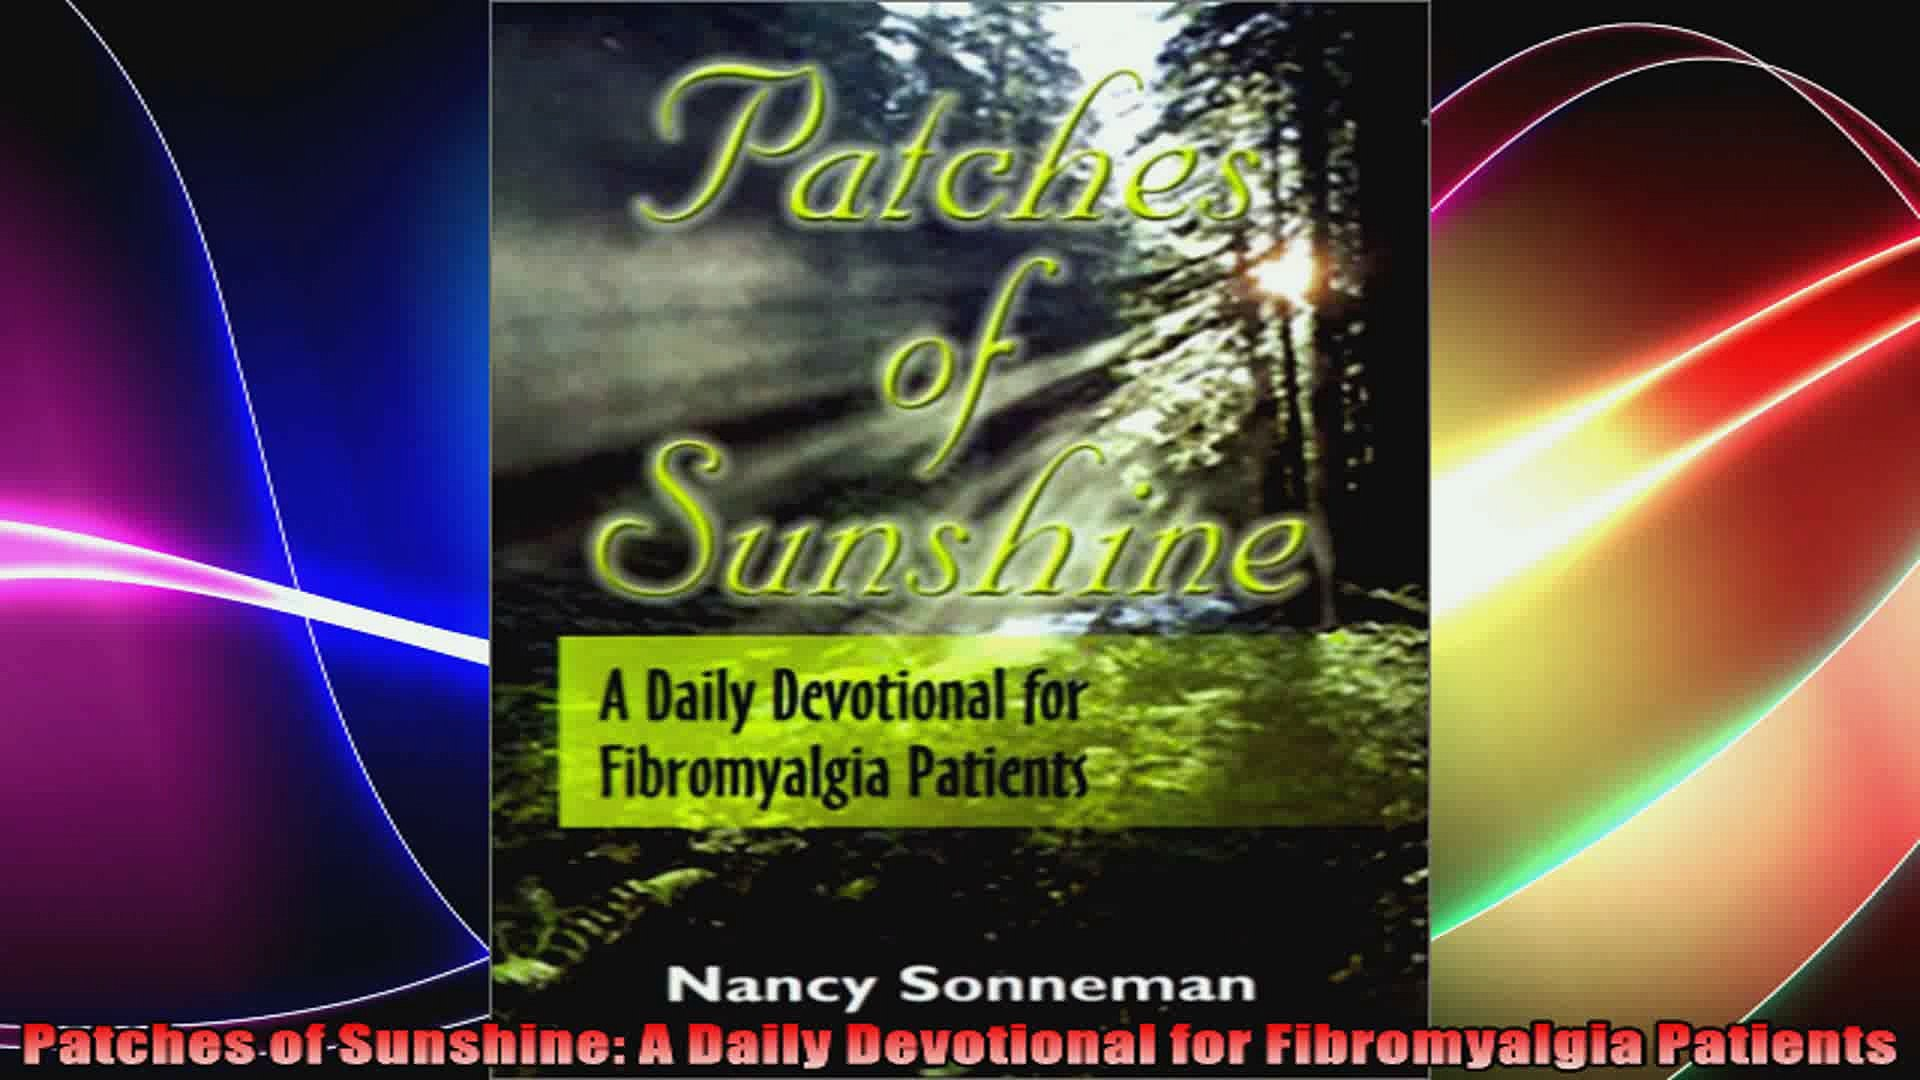 Patches of Sunshine A Daily Devotional for Fibromyalgia Patients